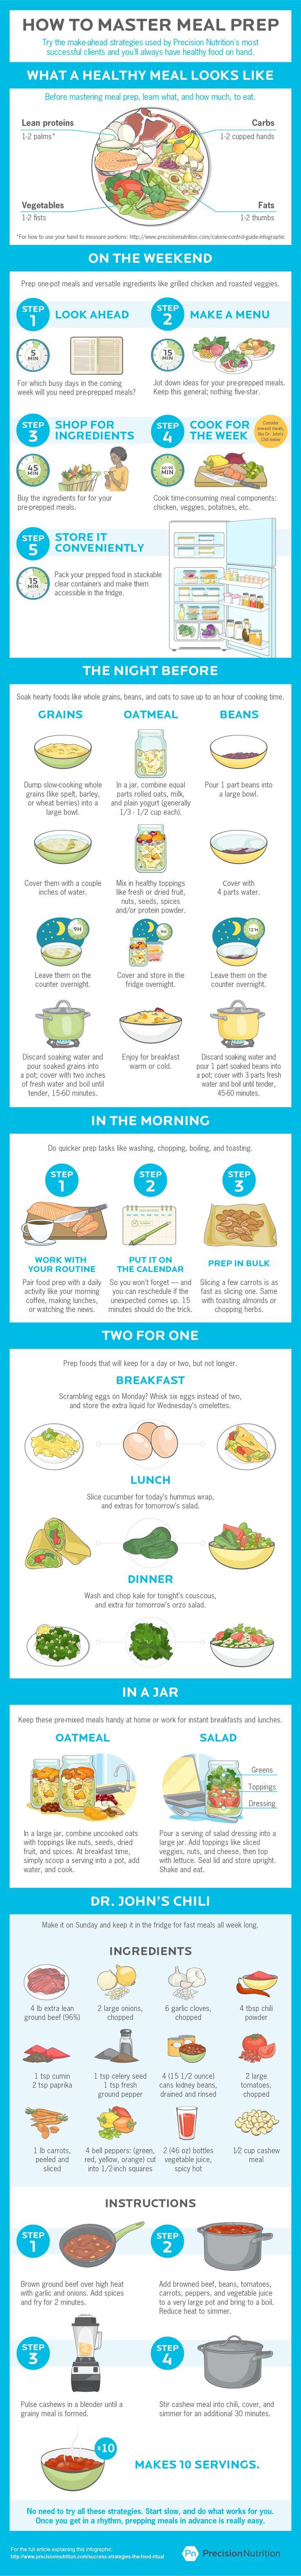 How to Master Meal Prep: [Infographic] 5 tricks for prepping healthy food in advance: http://www.precisionnutrition.com/weekly-meal-prep-infographic